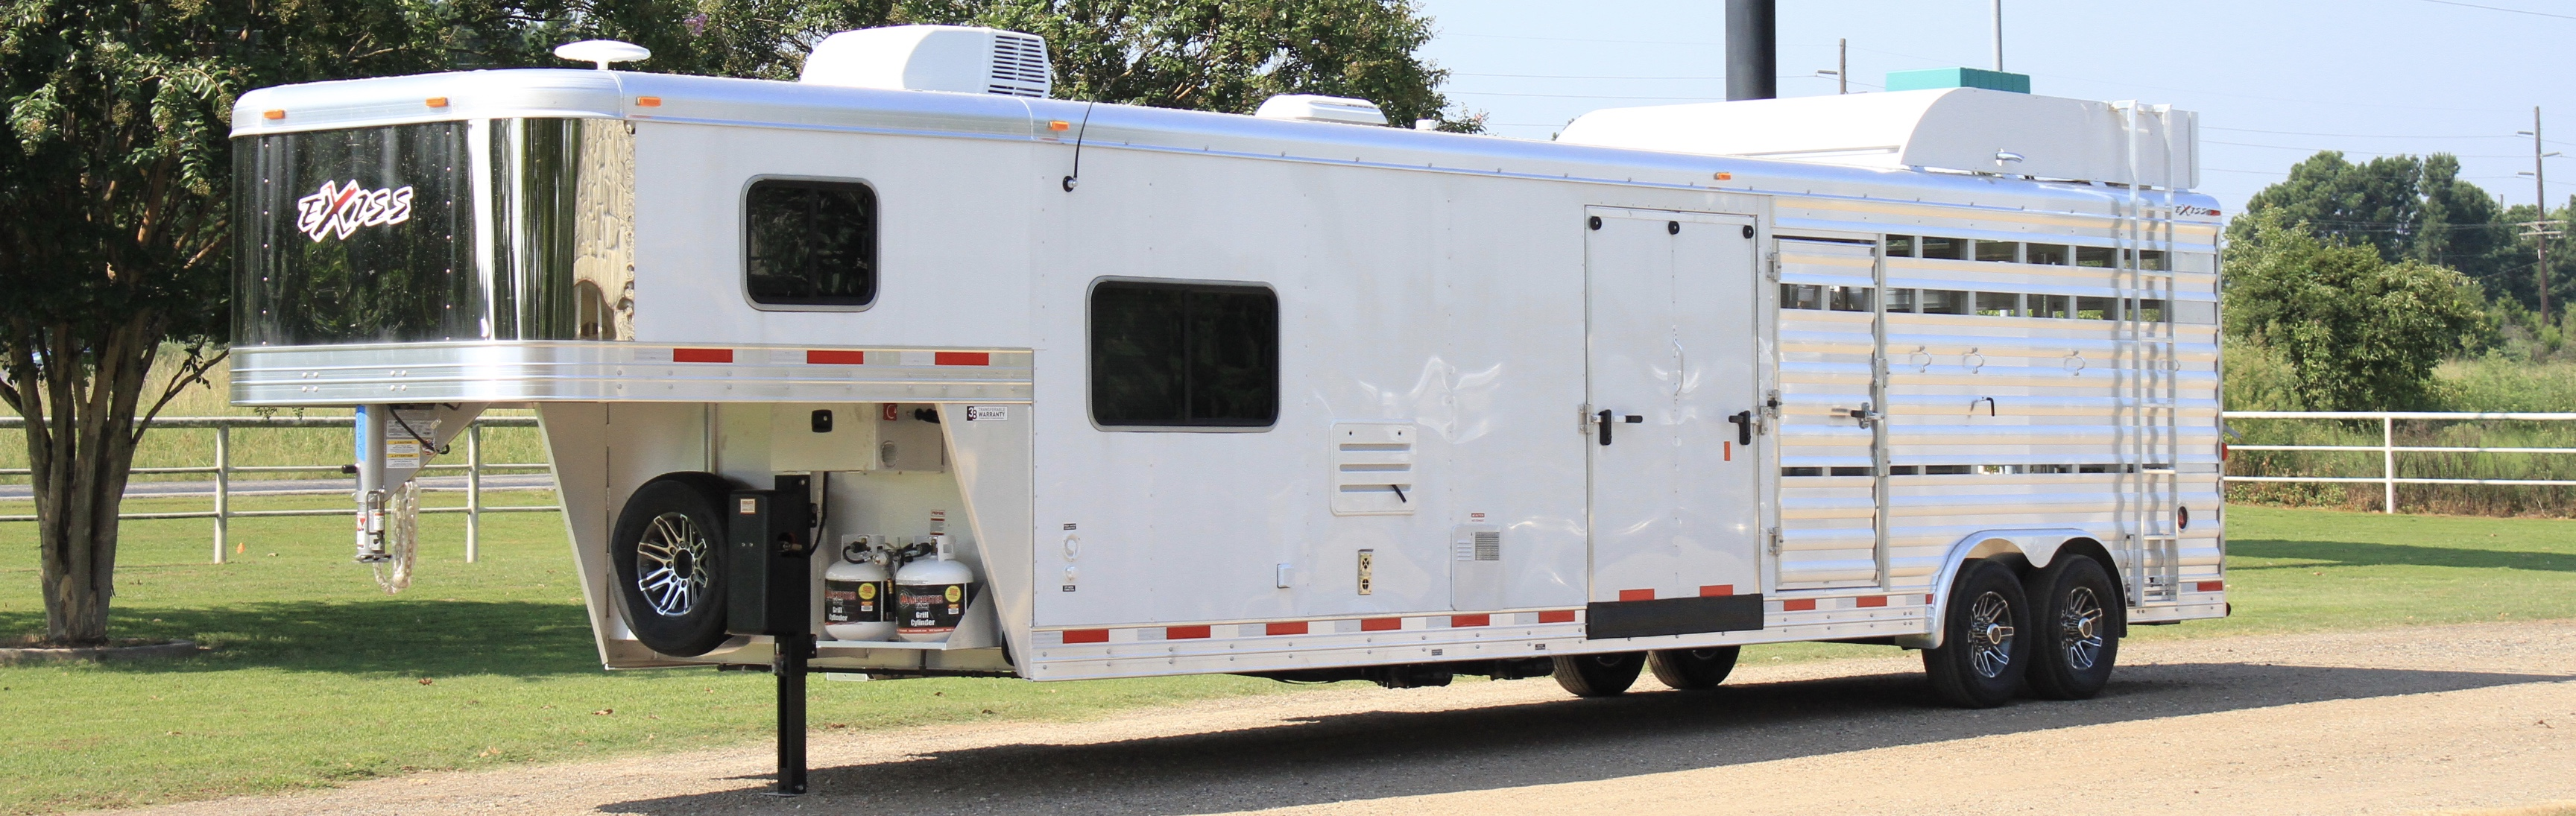 100 Utility Trailers For Sale Craigslist Houston Tx